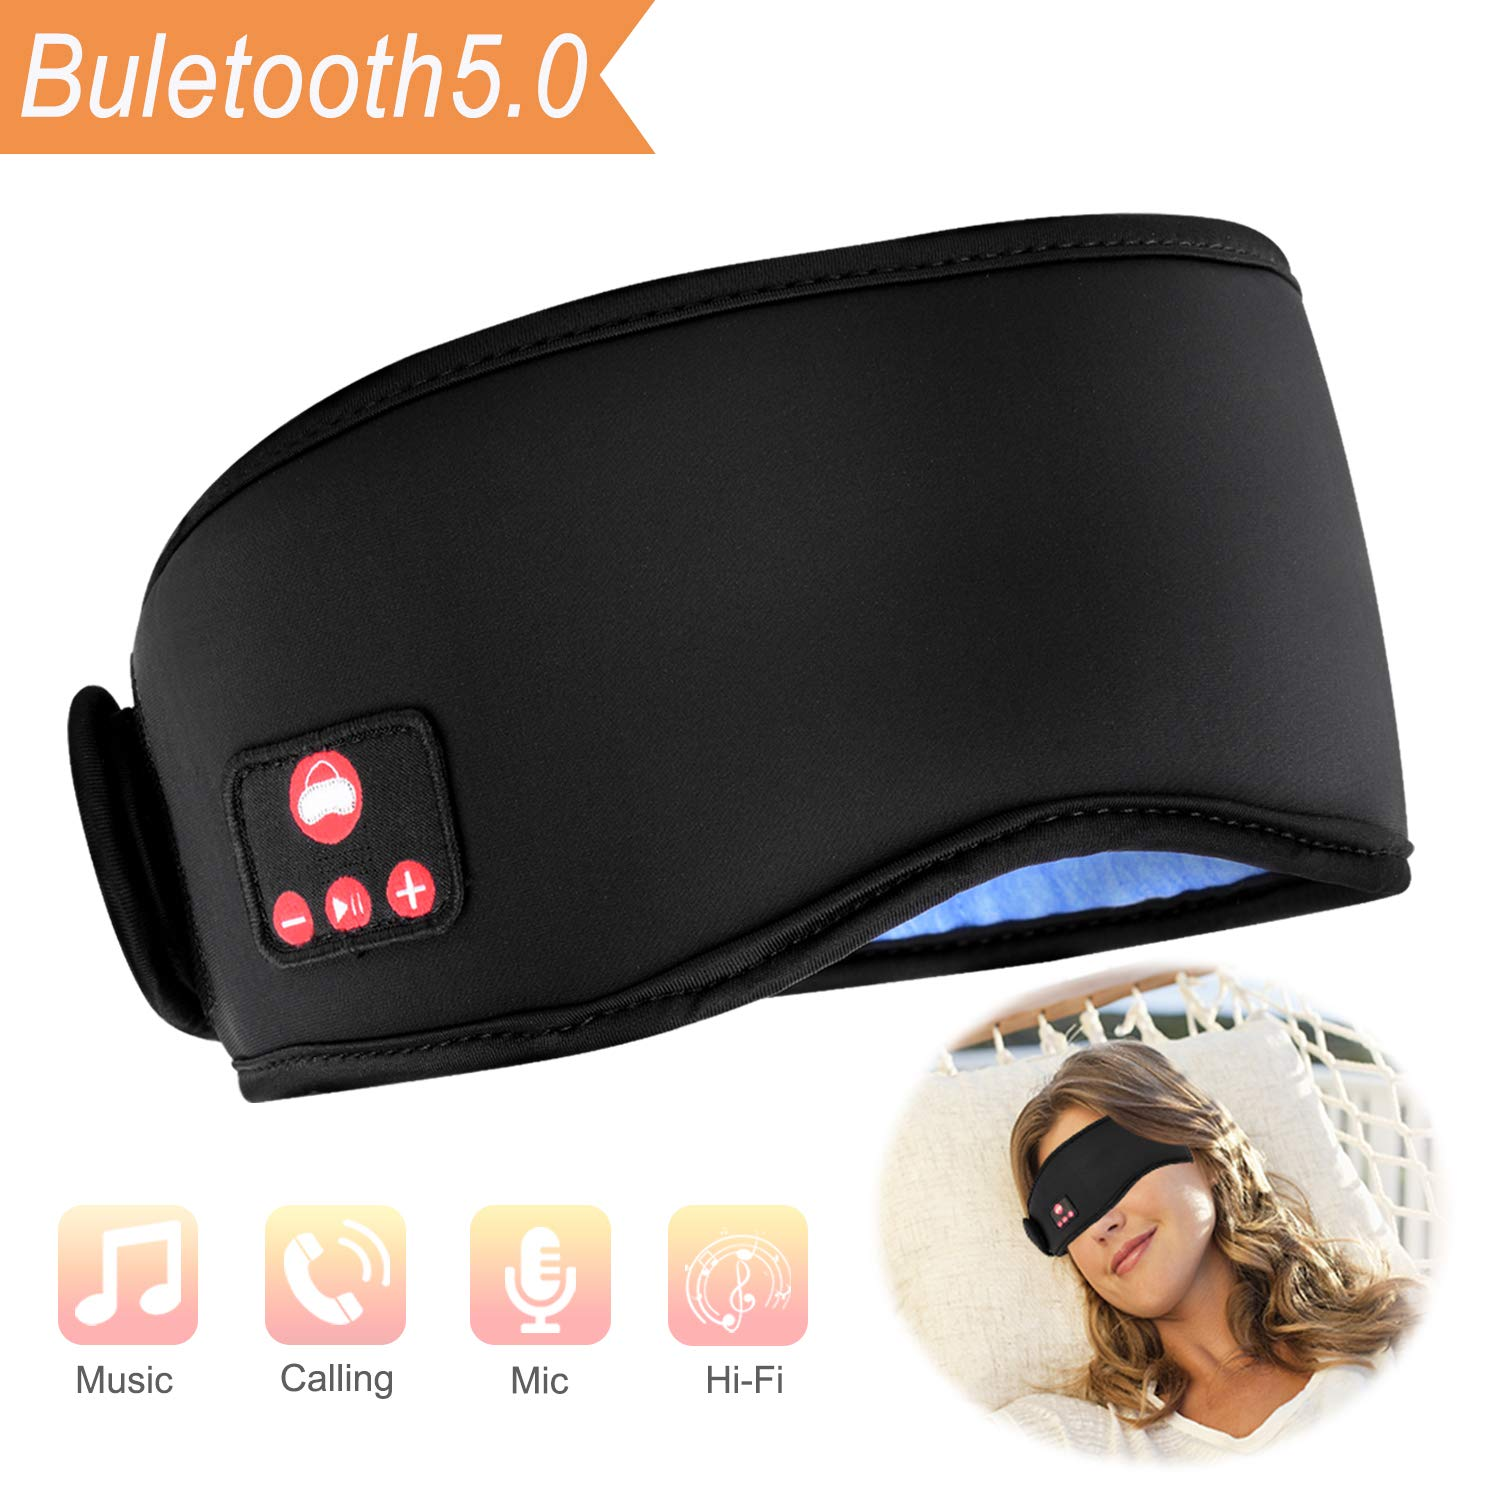 Sleep Headphones Bluetooth Sleeping Eye Mask, Jimey Wireless Bluetooth Headphones Music Travel Sleeping Headset 5.0 Bluetooth with Silk Lining Sleepphones Built-in Speakers Microphone Washable